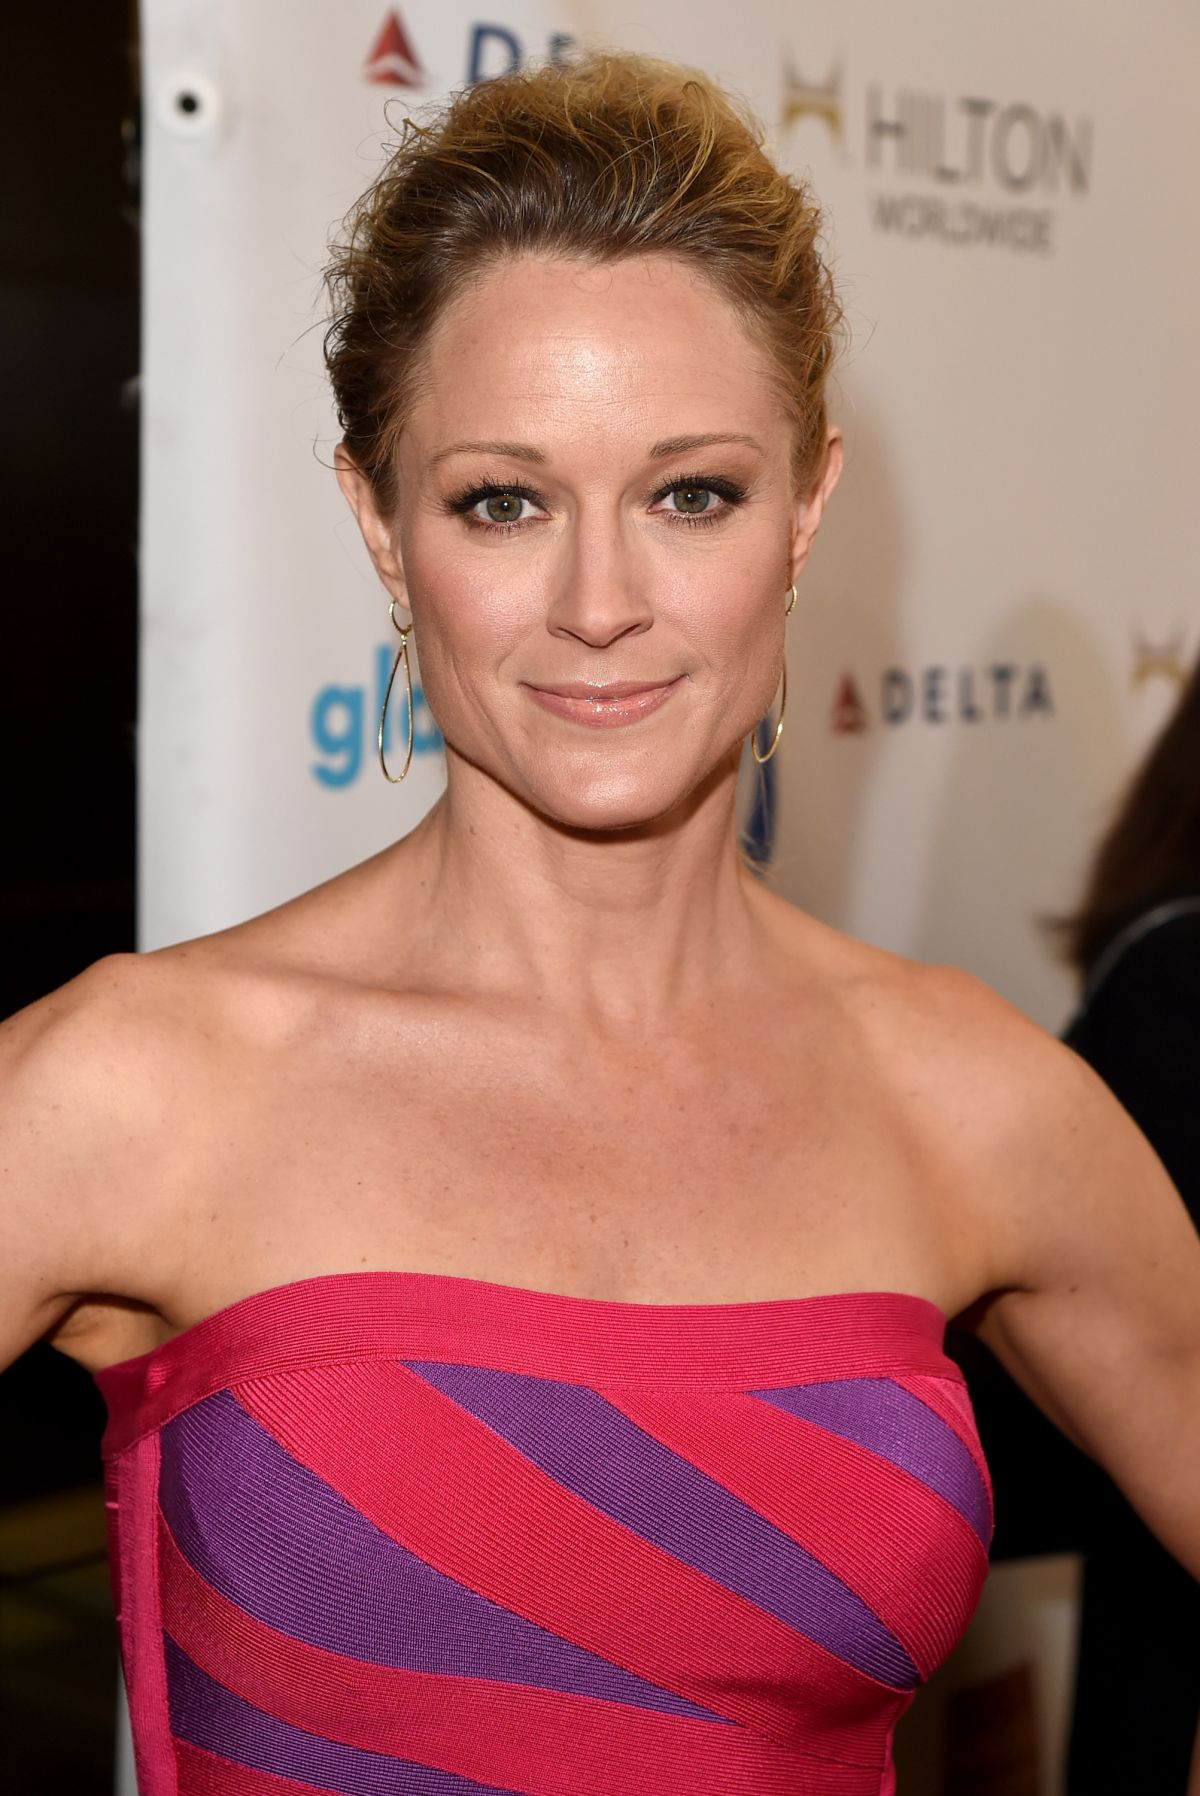 teri polo hallmark moviesteri polo twitter, teri polo gif, teri polo monk, teri polo wikipedia, teri polo instagram, teri polo daughter, teri polo facebook, teri polo, teri polo imdb, teri polo hallmark movies, teri polo tattoo, teri polo death, teri polo net worth